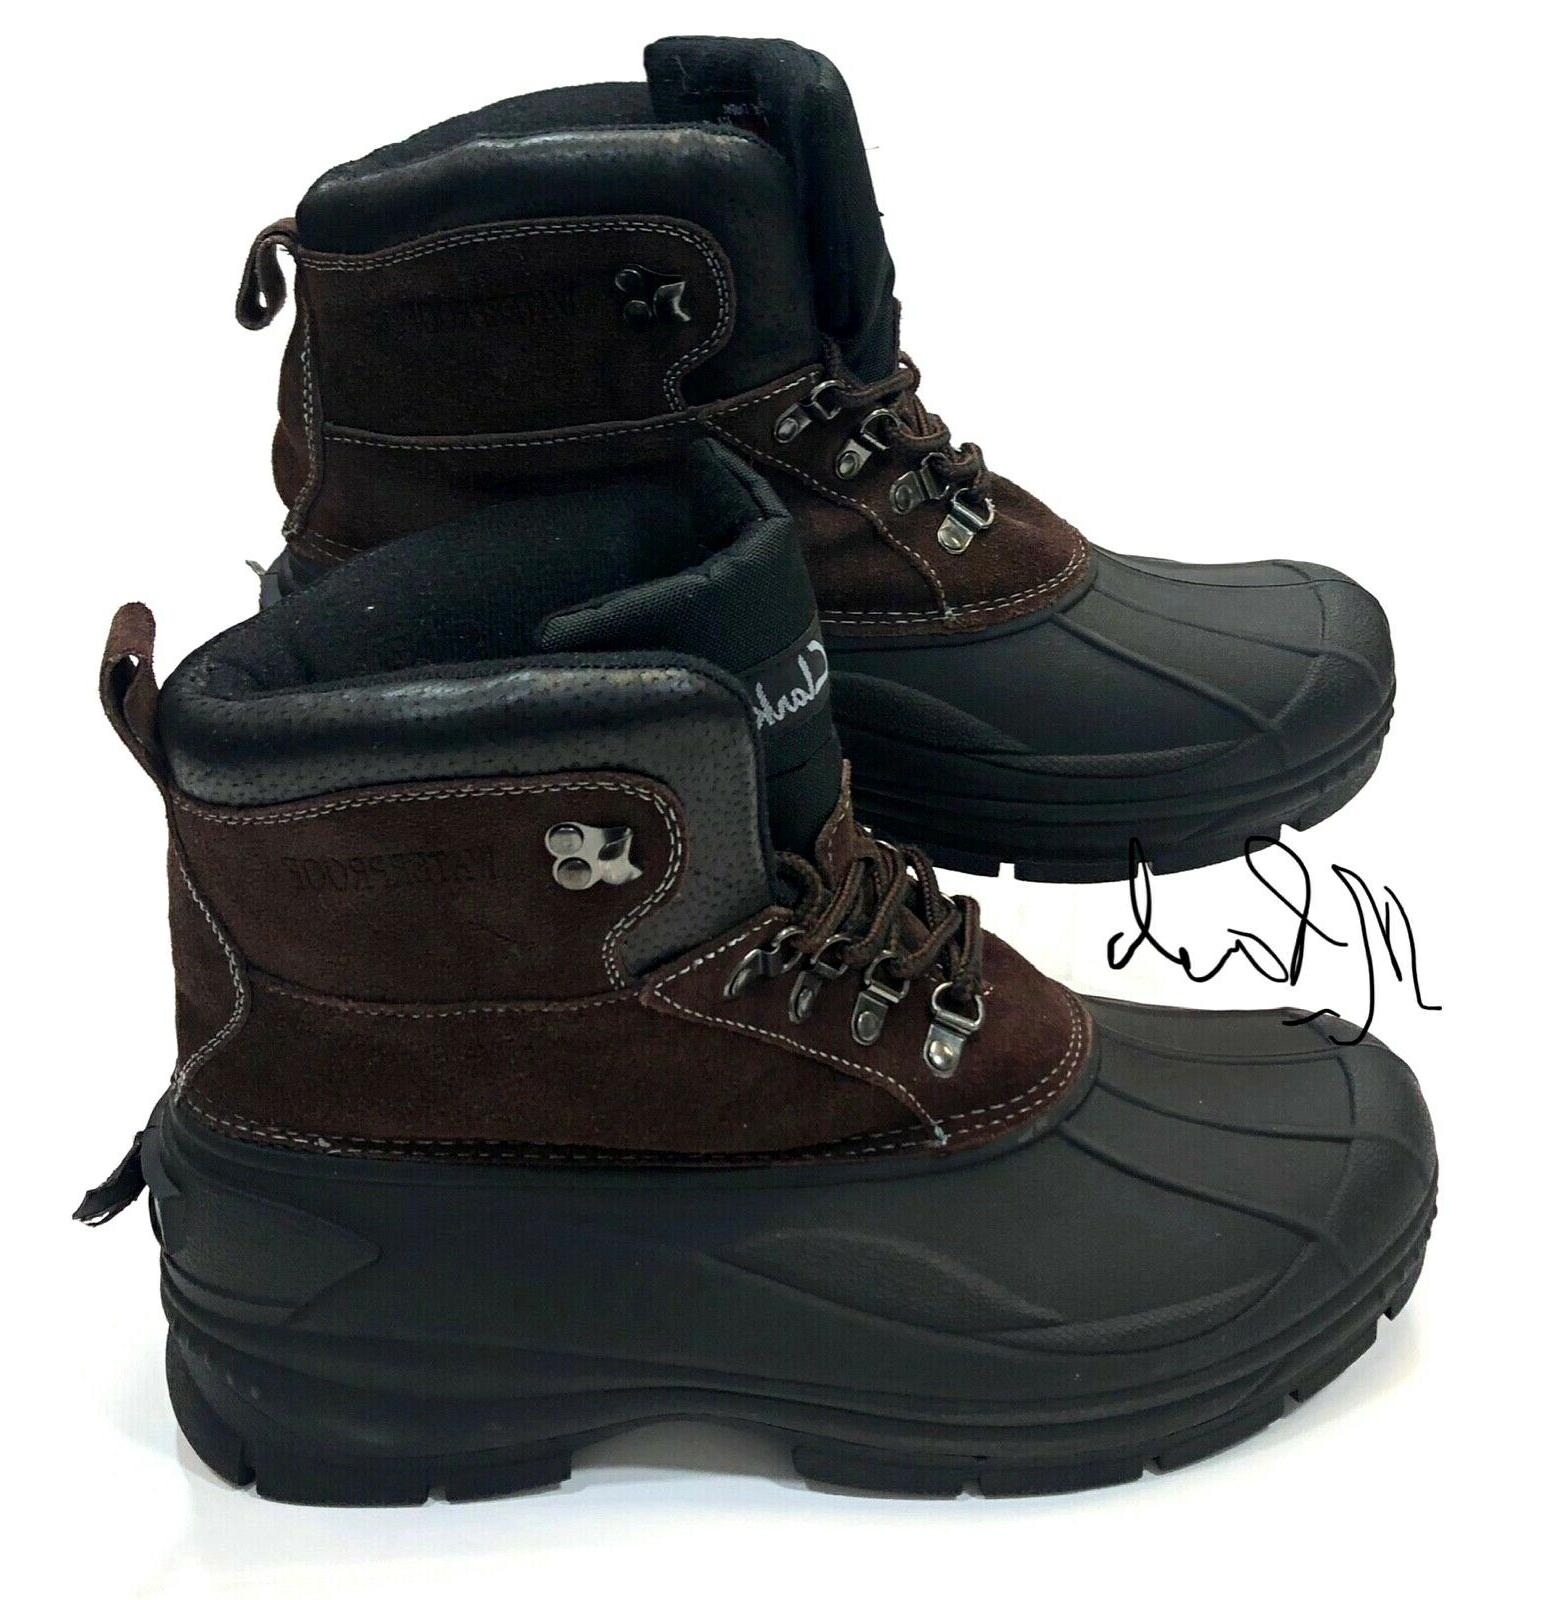 Clarks Edge Insulated Winter Boots Mens Size 12